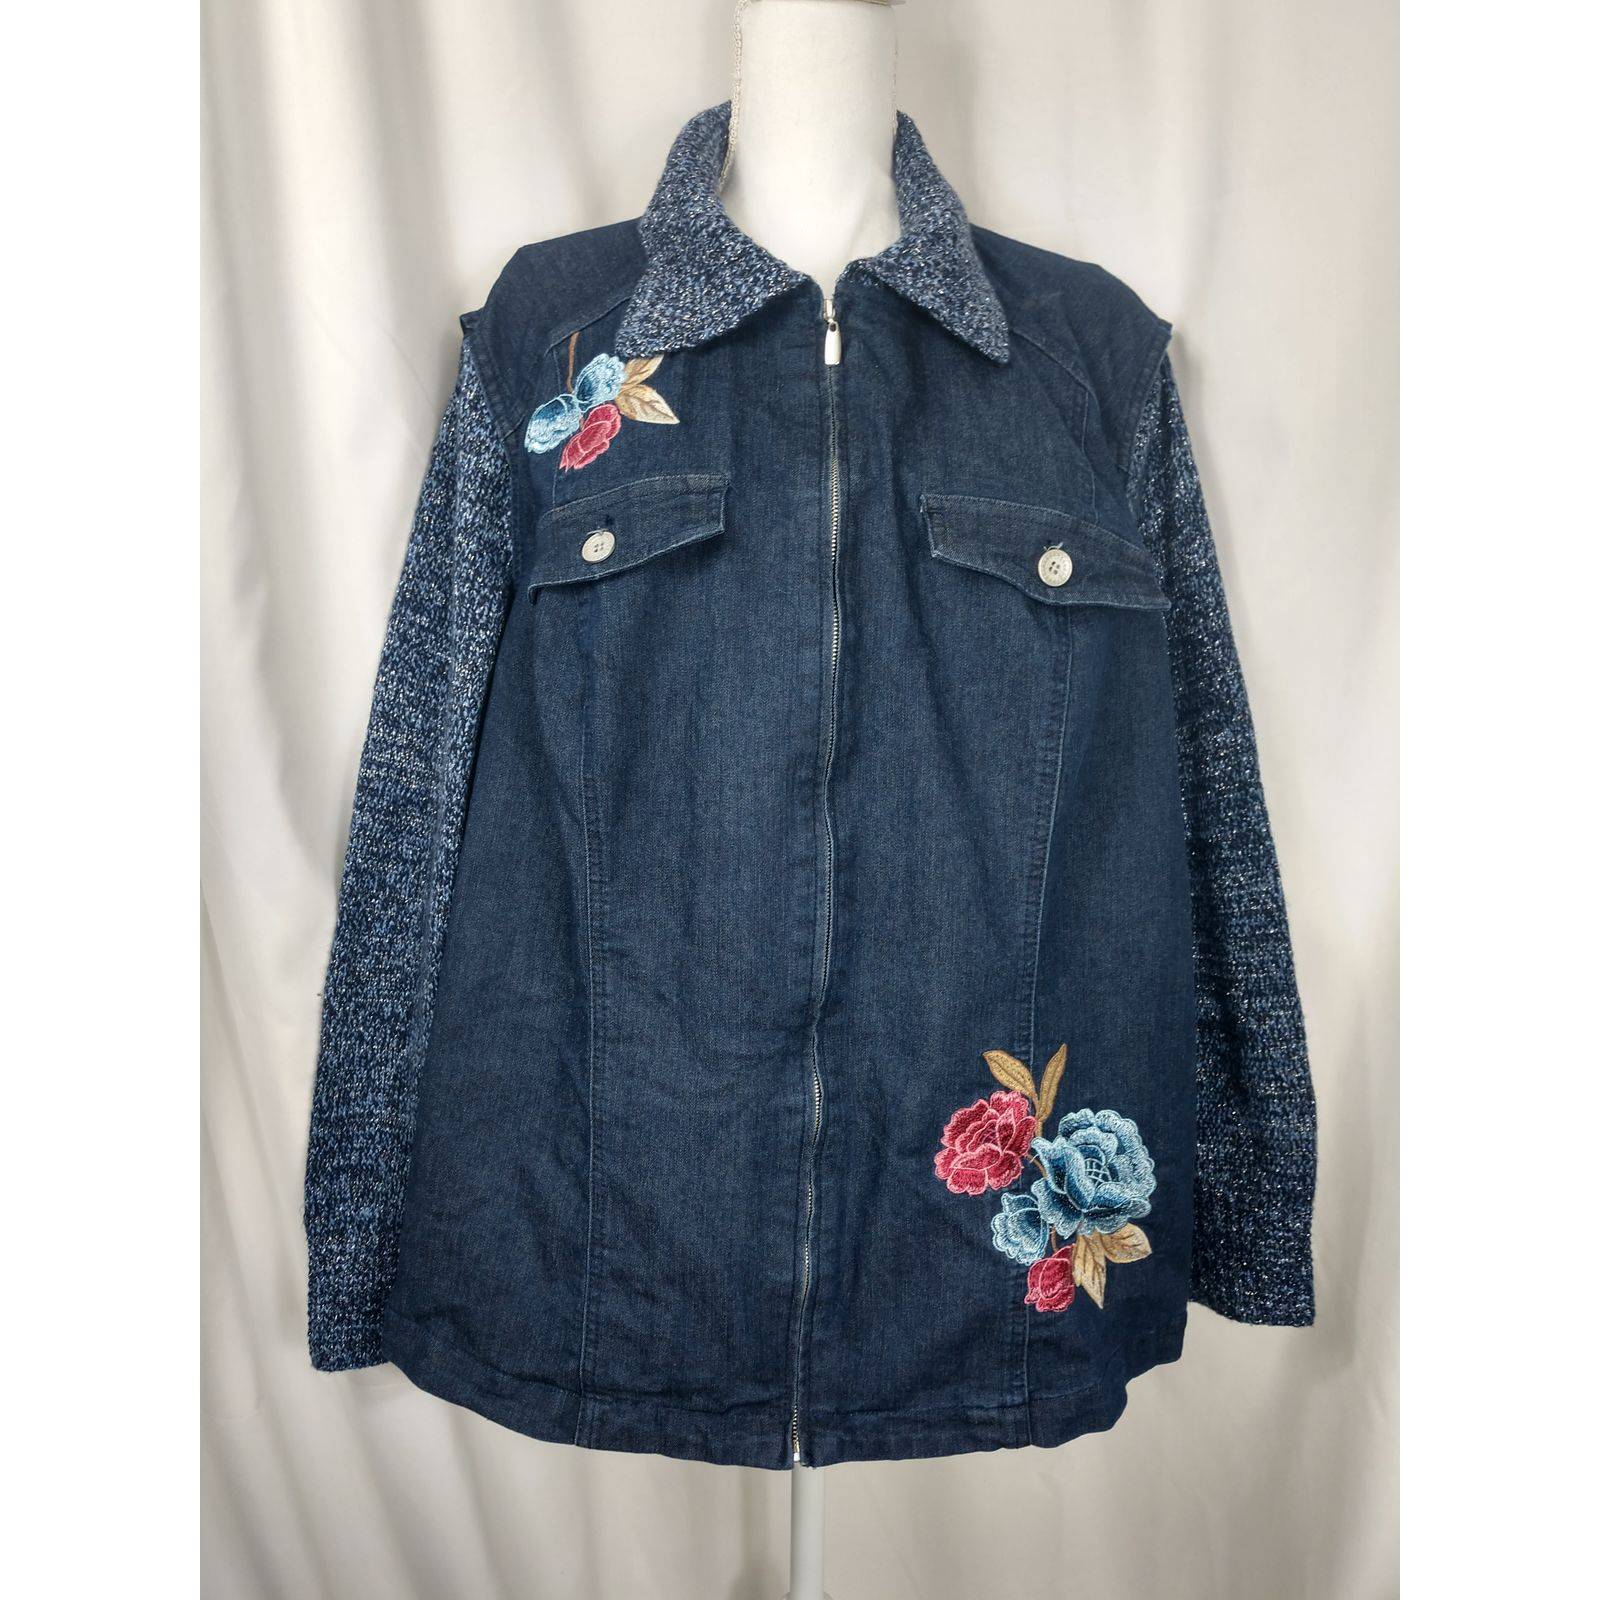 Alfred Dunner 20W jean jacket